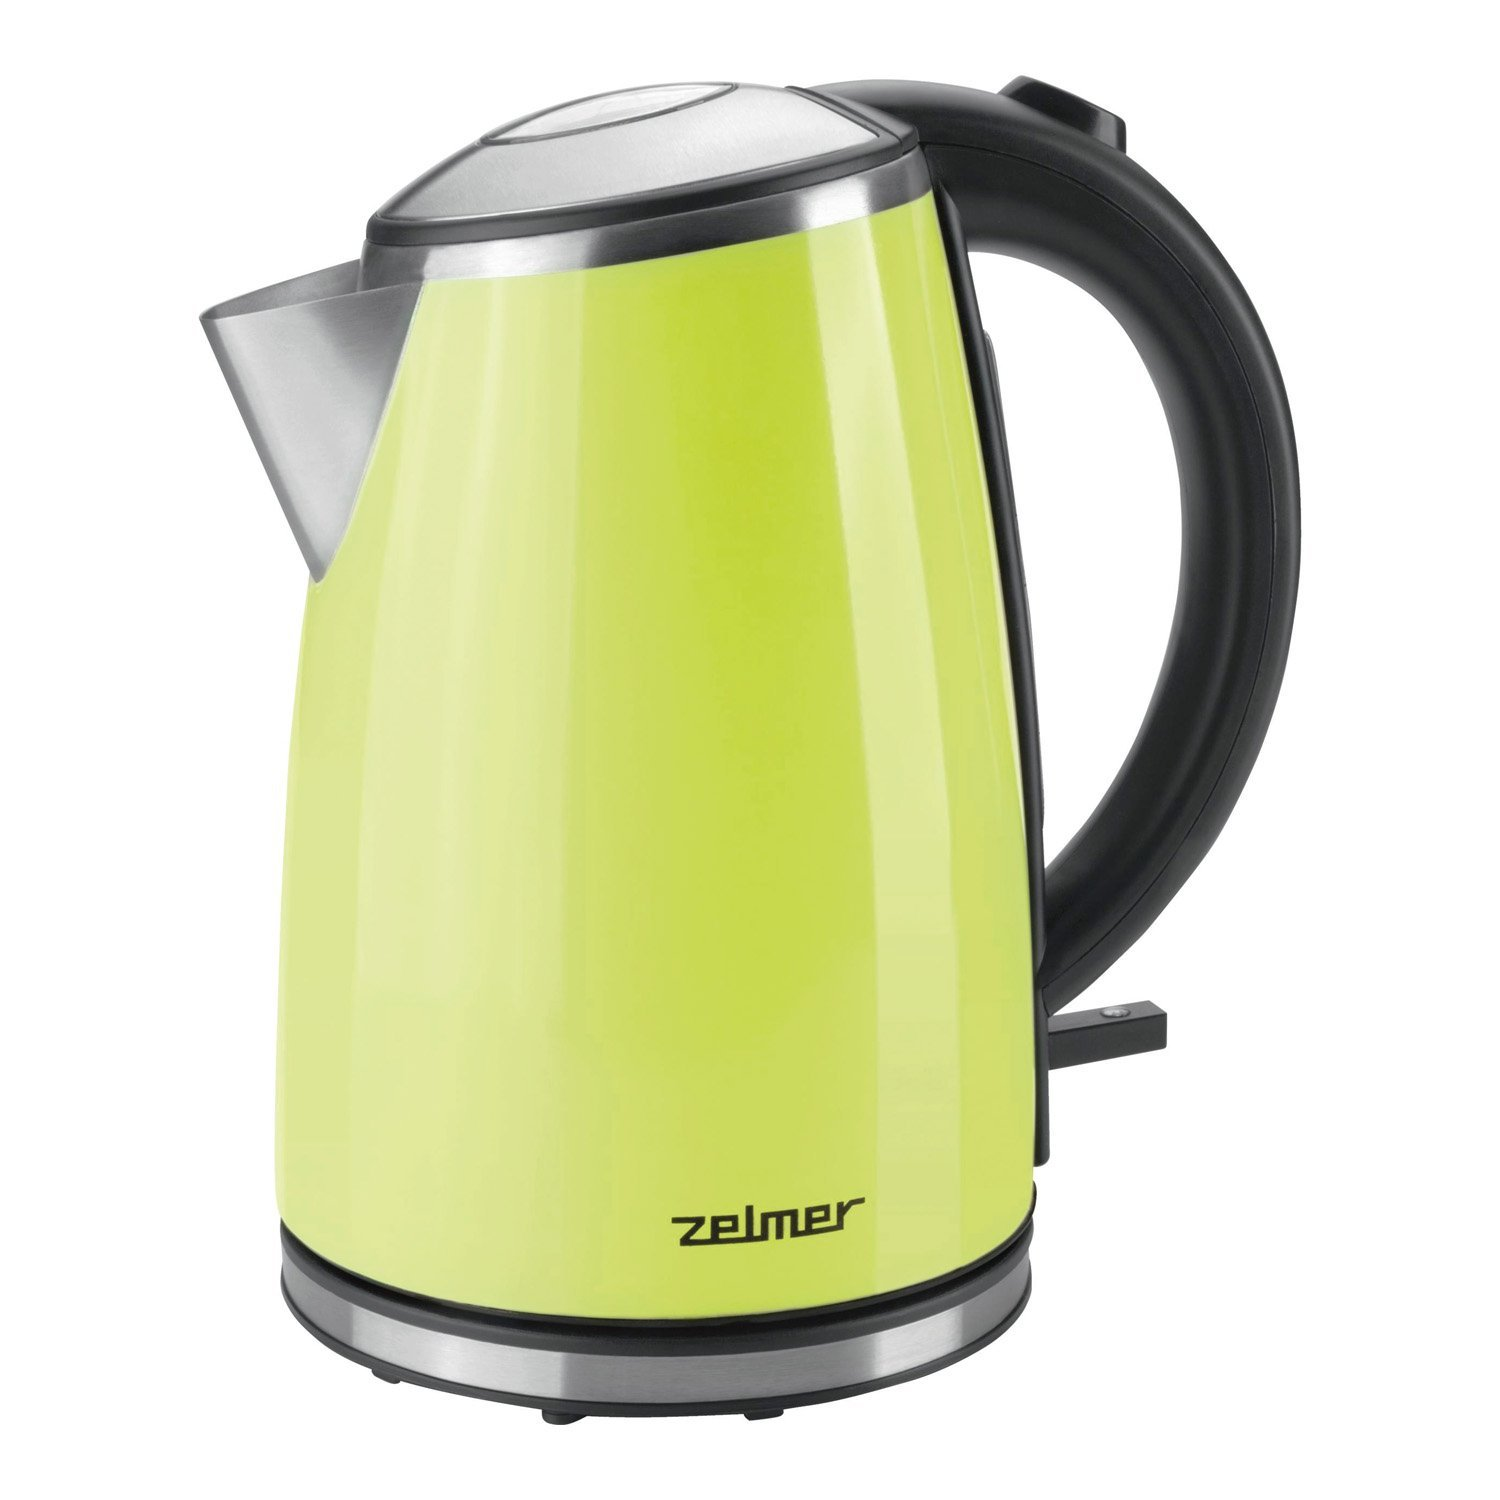 Zelmer Kettle Zelmer CK1274 Apple (CK1020): Amazon.es: Electrónica